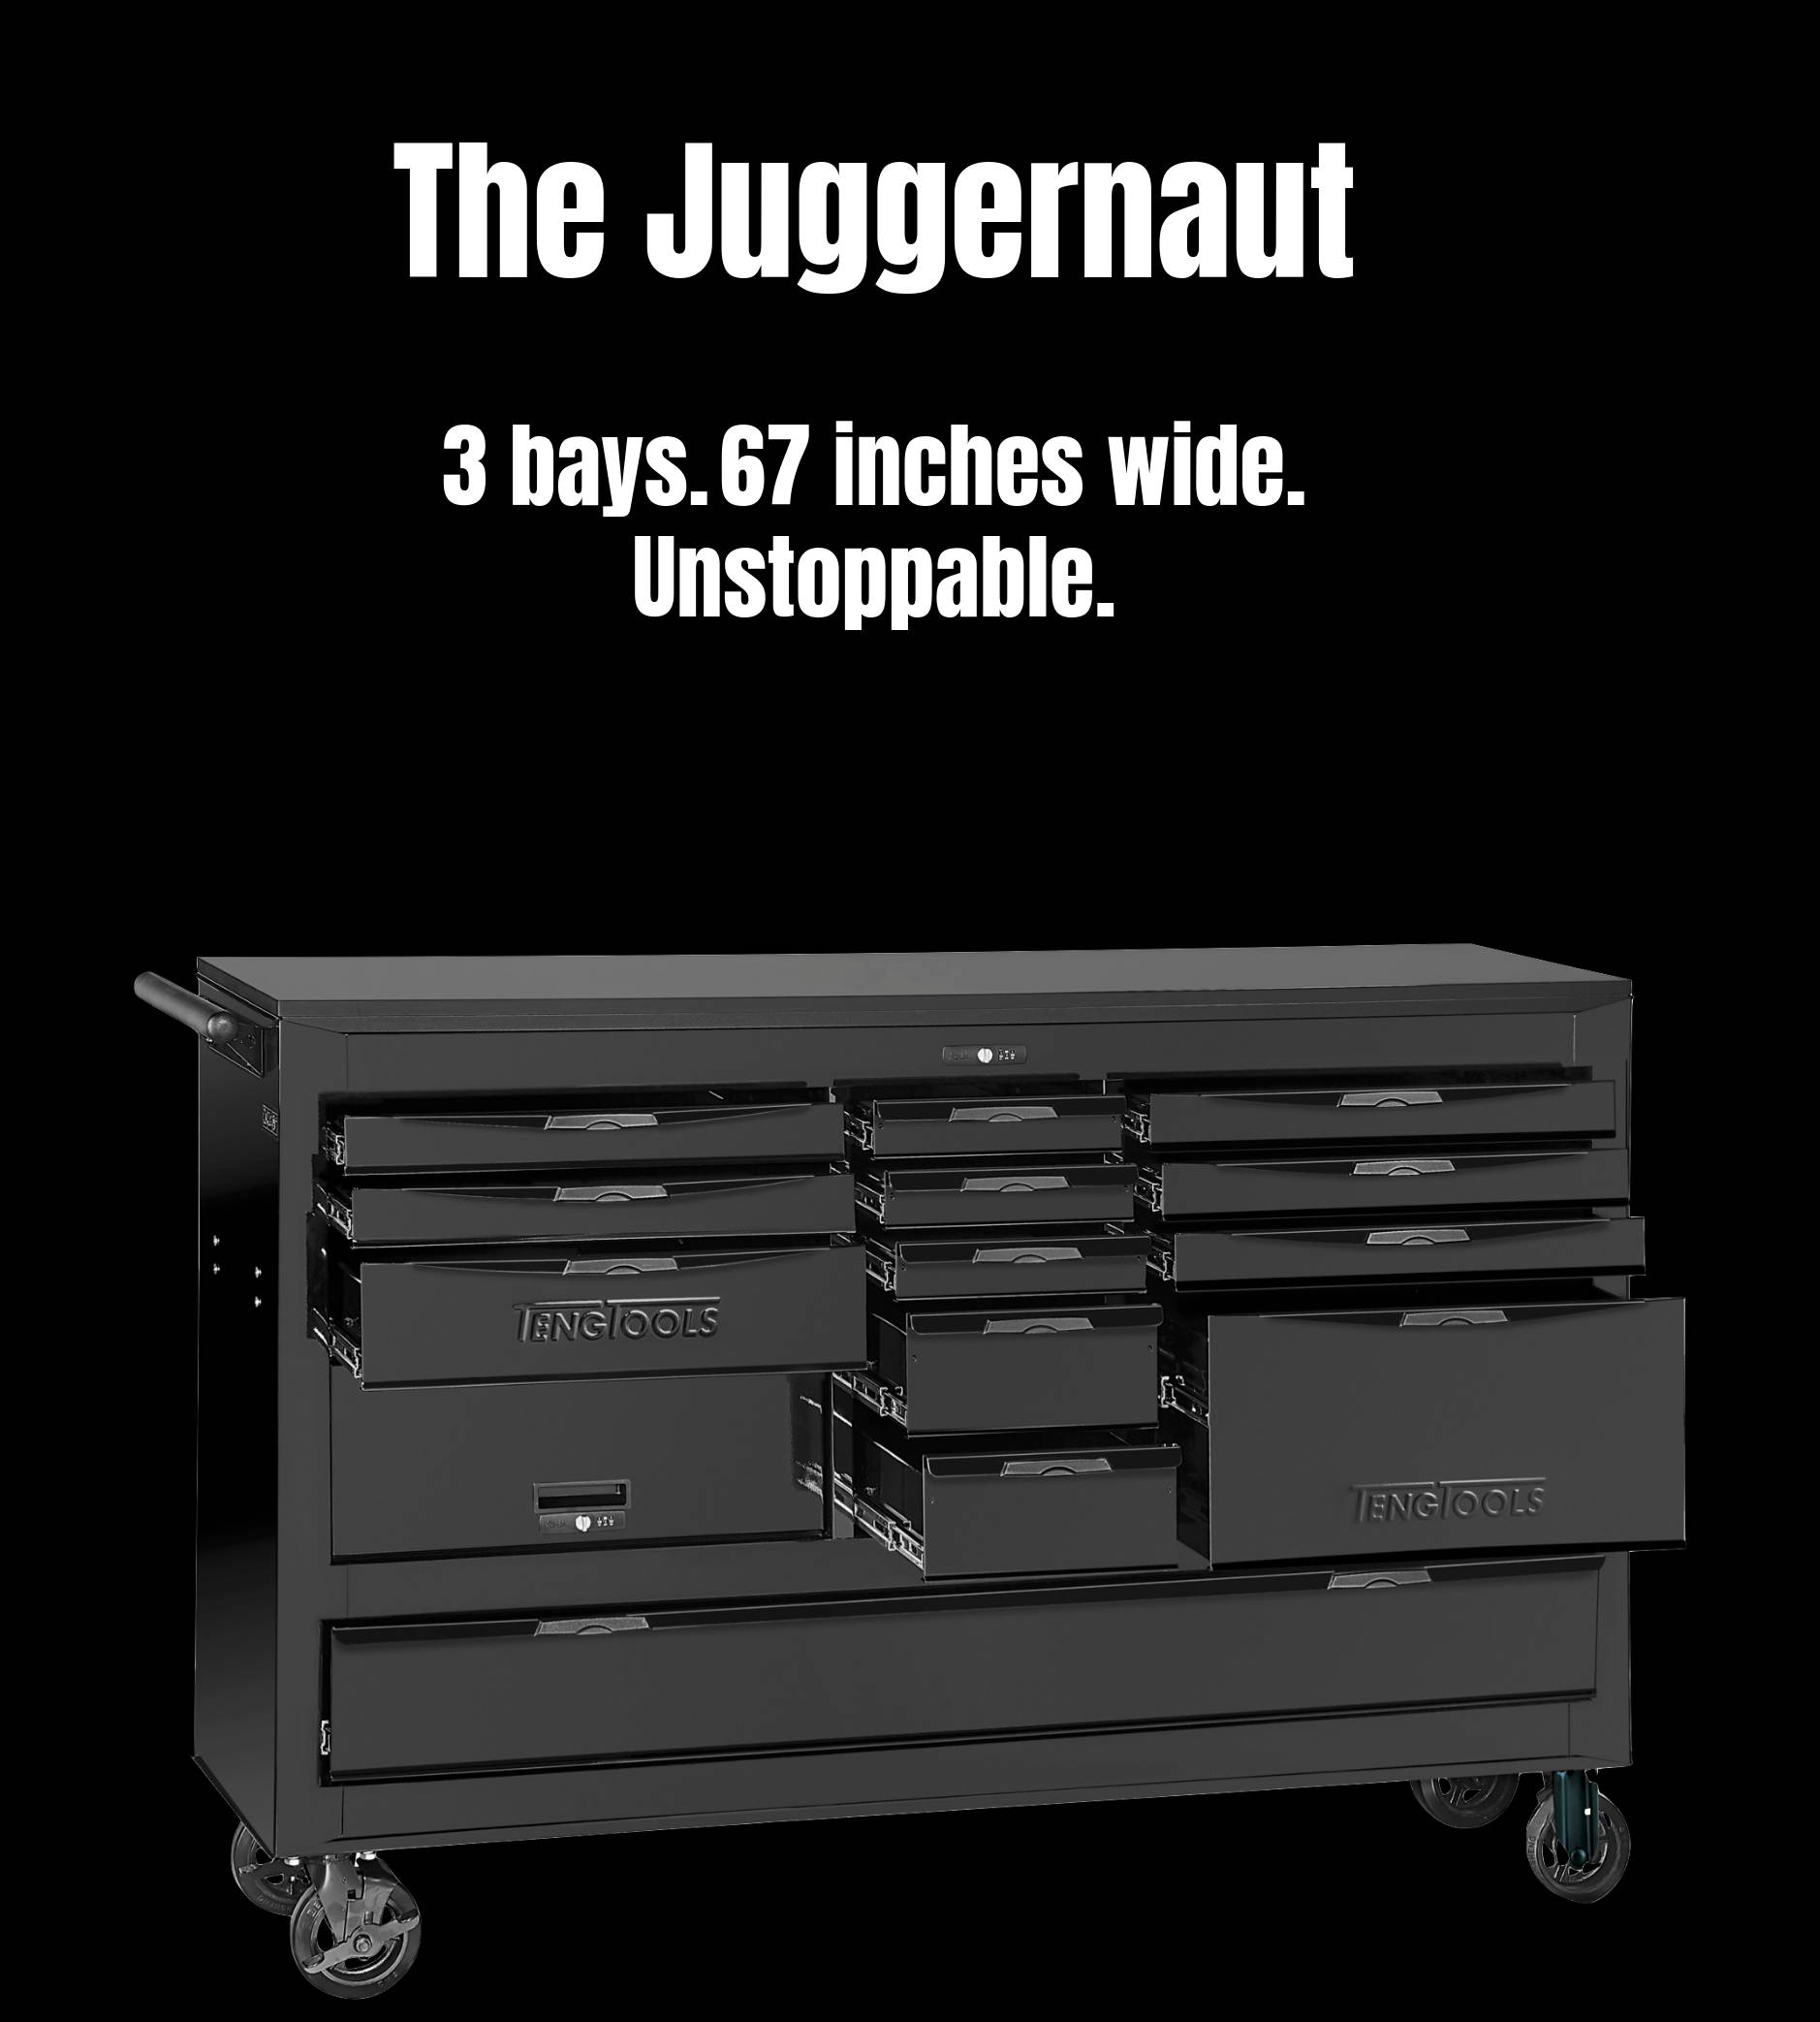 The Juggernaut. 3 bays. 67 inches wide. Unstoppable.